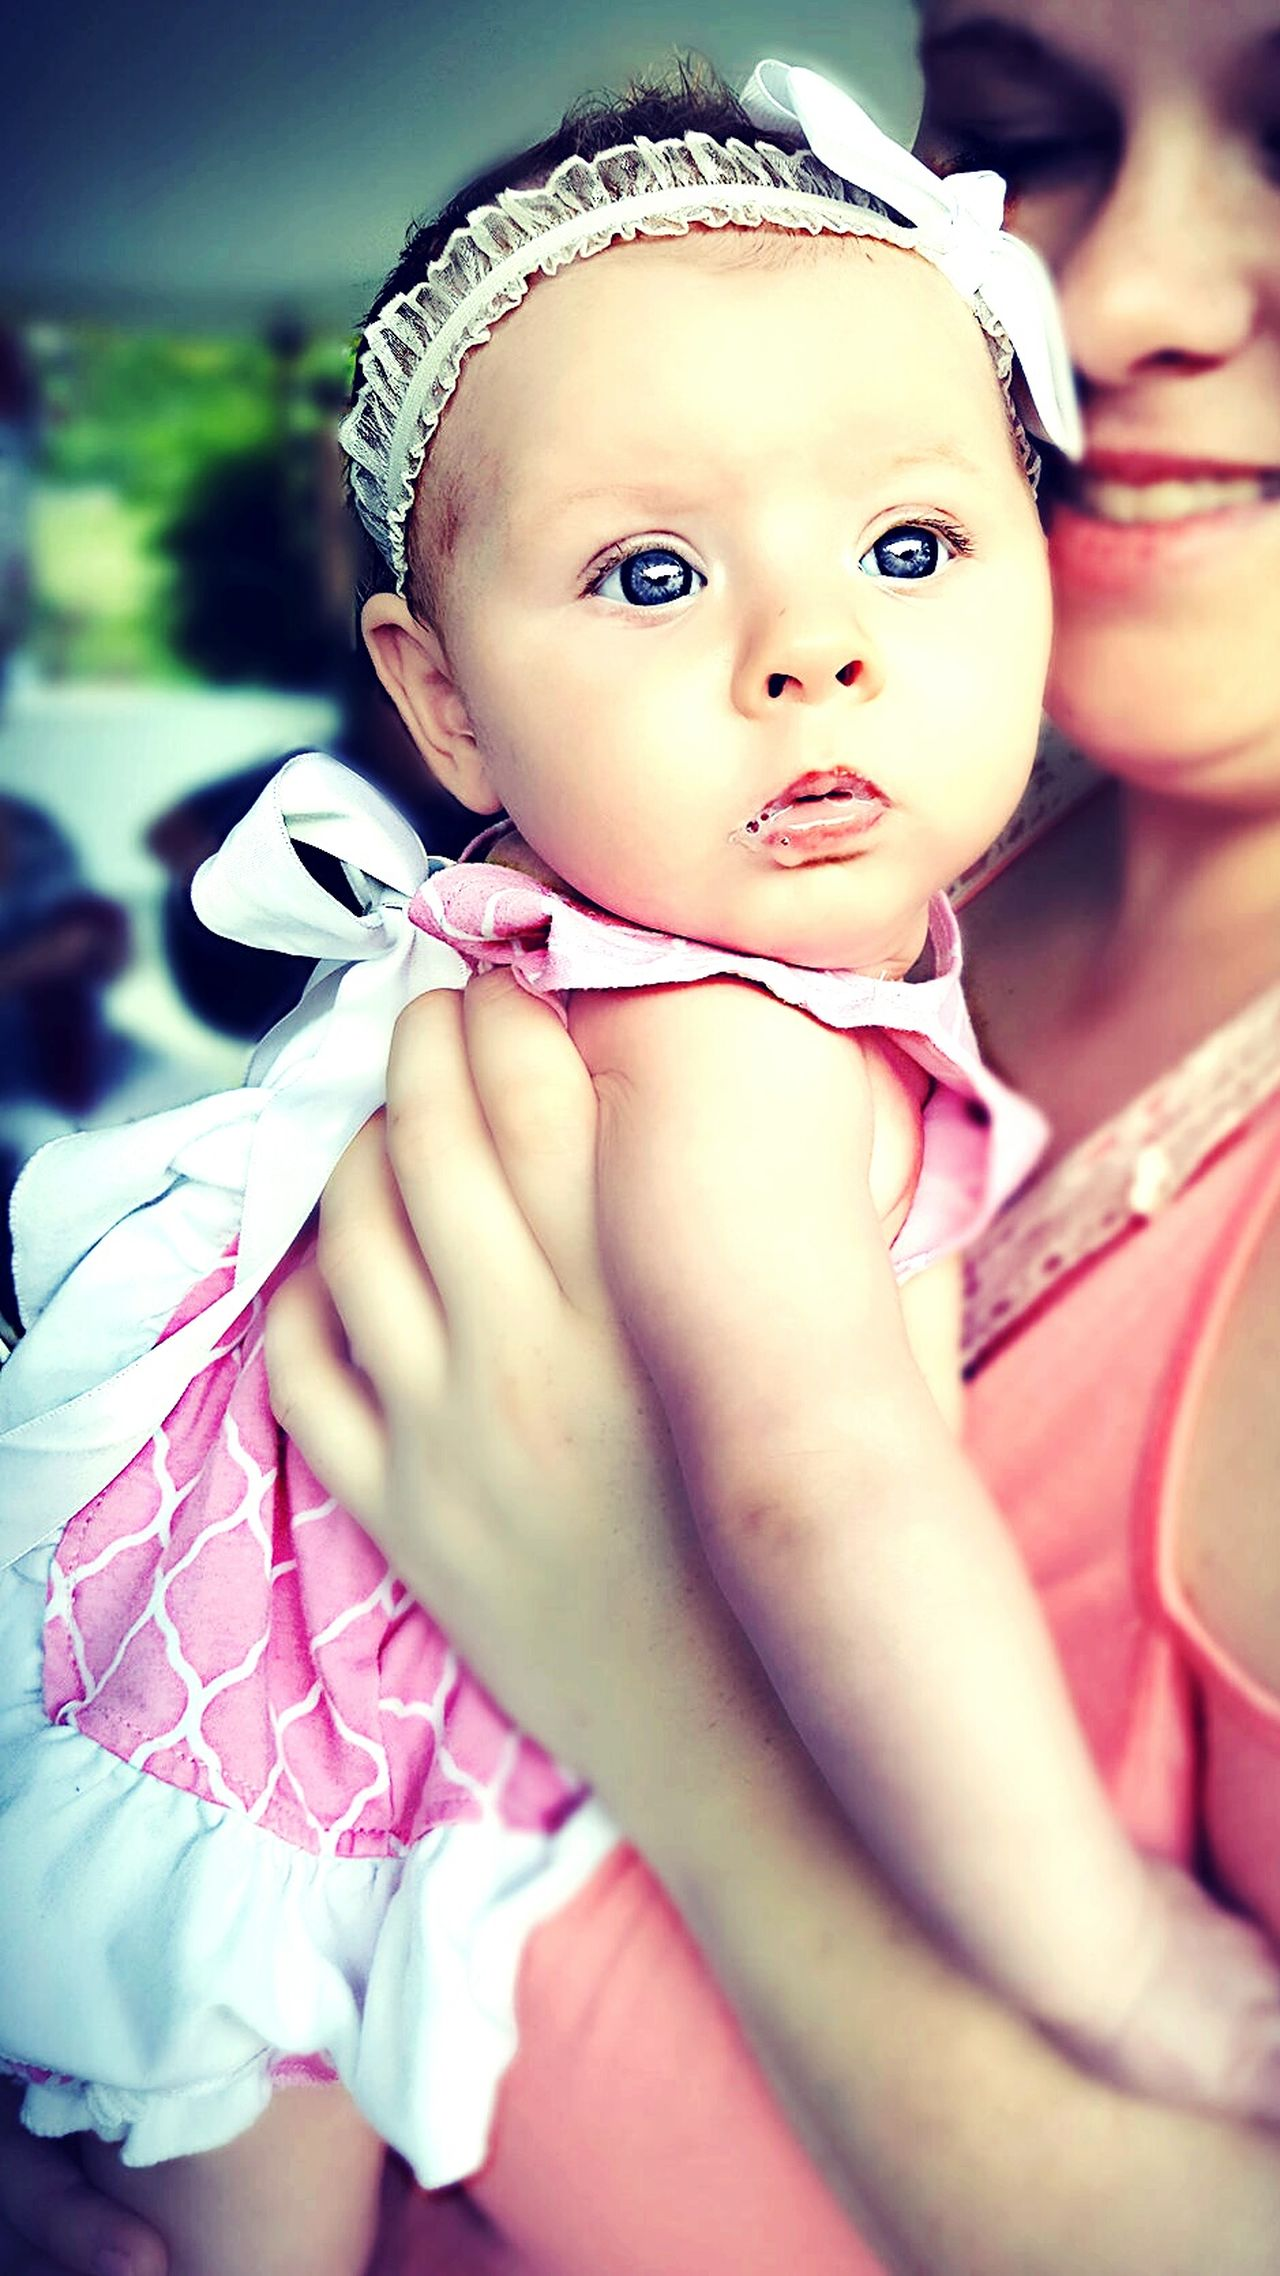 Beautiful Eyes Blue Eyes Bright Eyes Cambriejoanna Cambrie Mommy & Daughter  MommyLove Mommy Sunshine Beautiful Beautiful Girl MyBabyGirl  Daughter